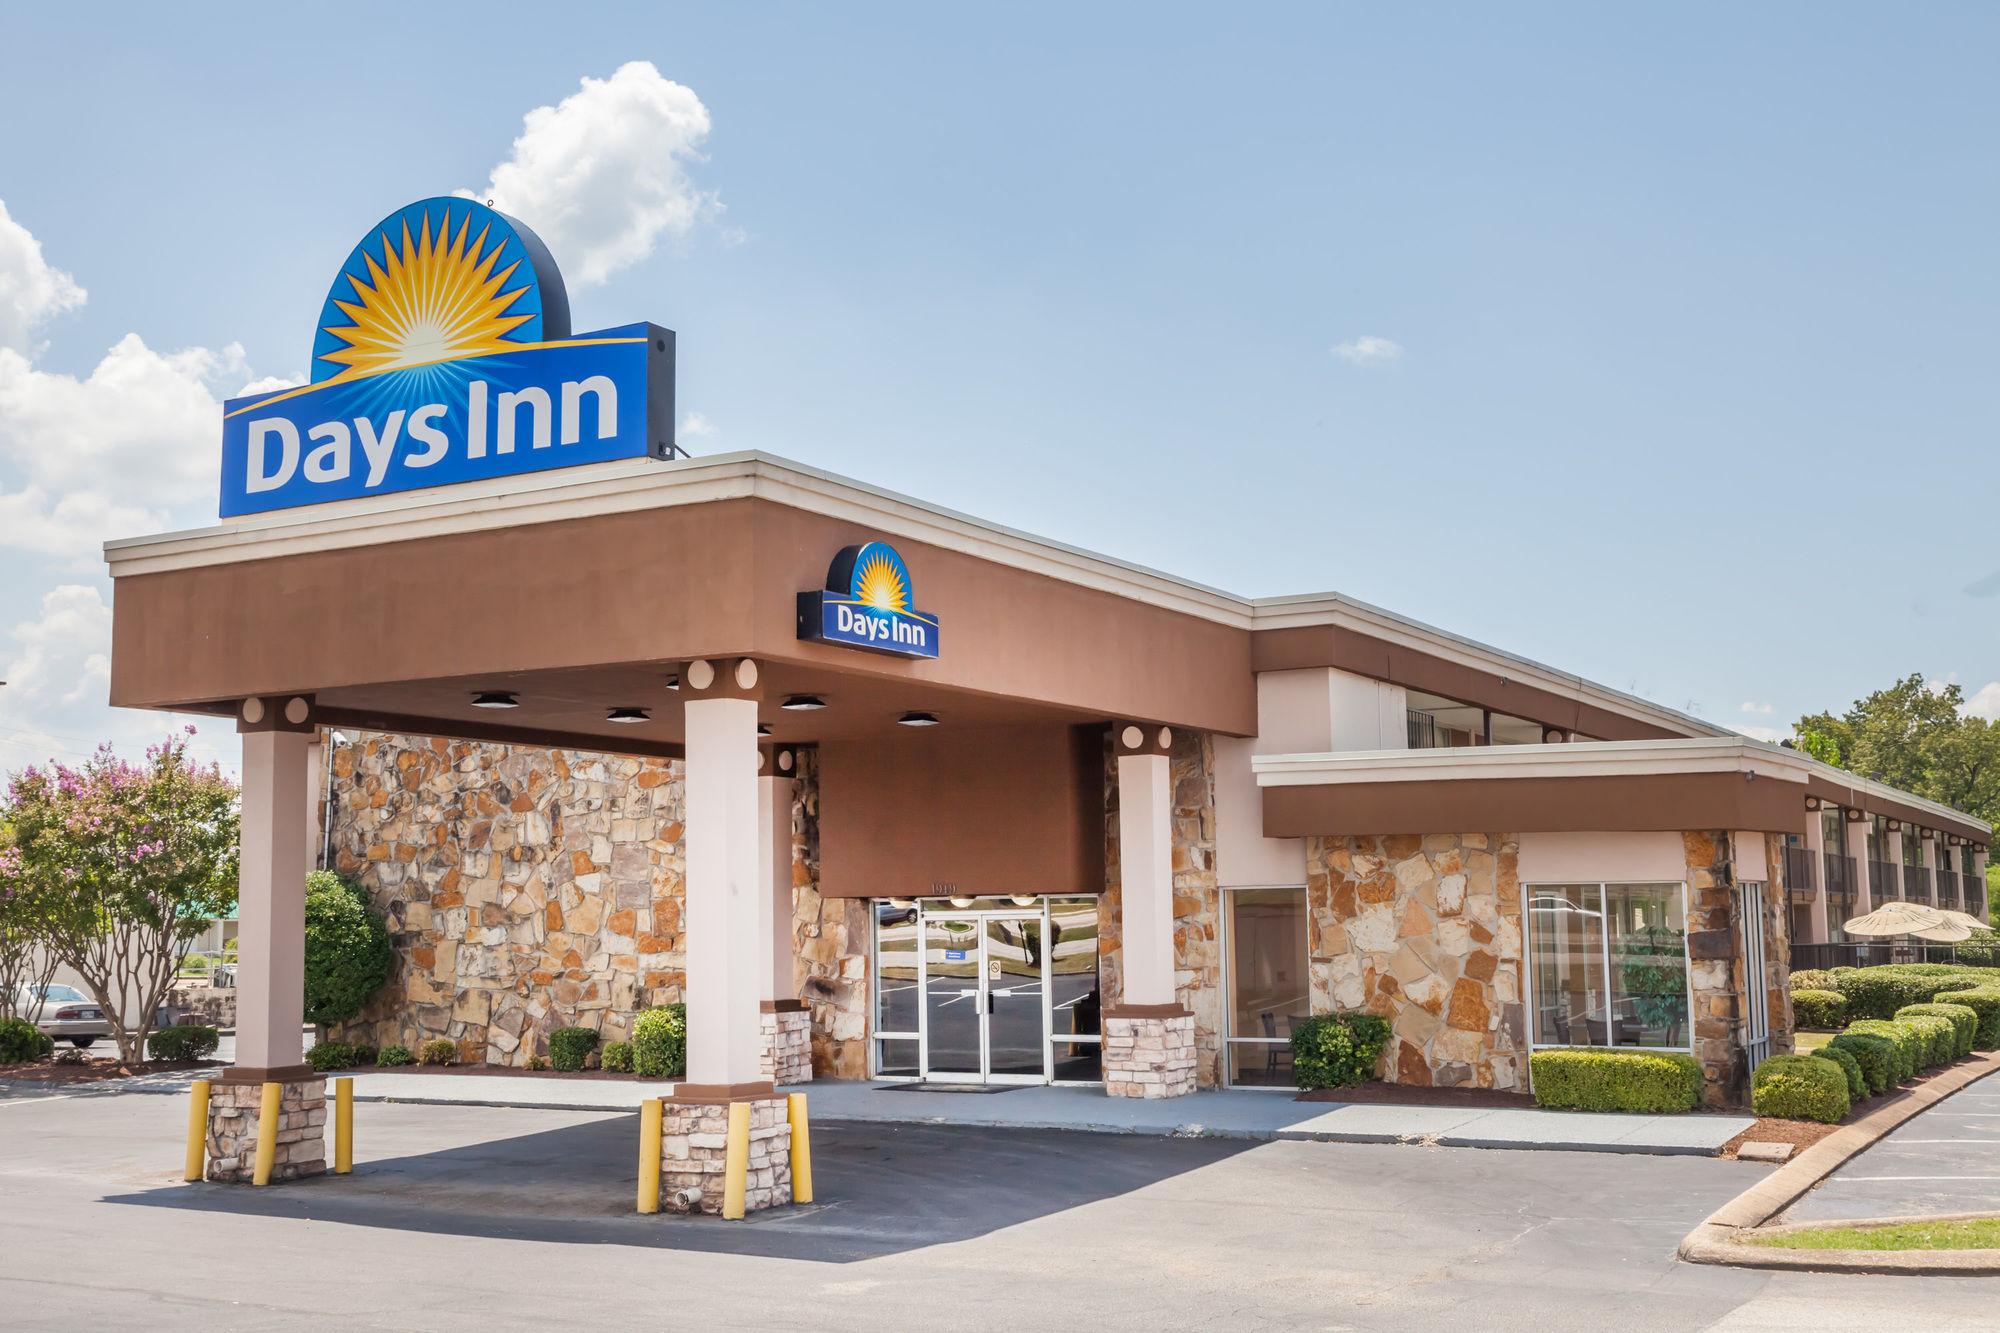 Days Inn Jackson in Jackson, TN